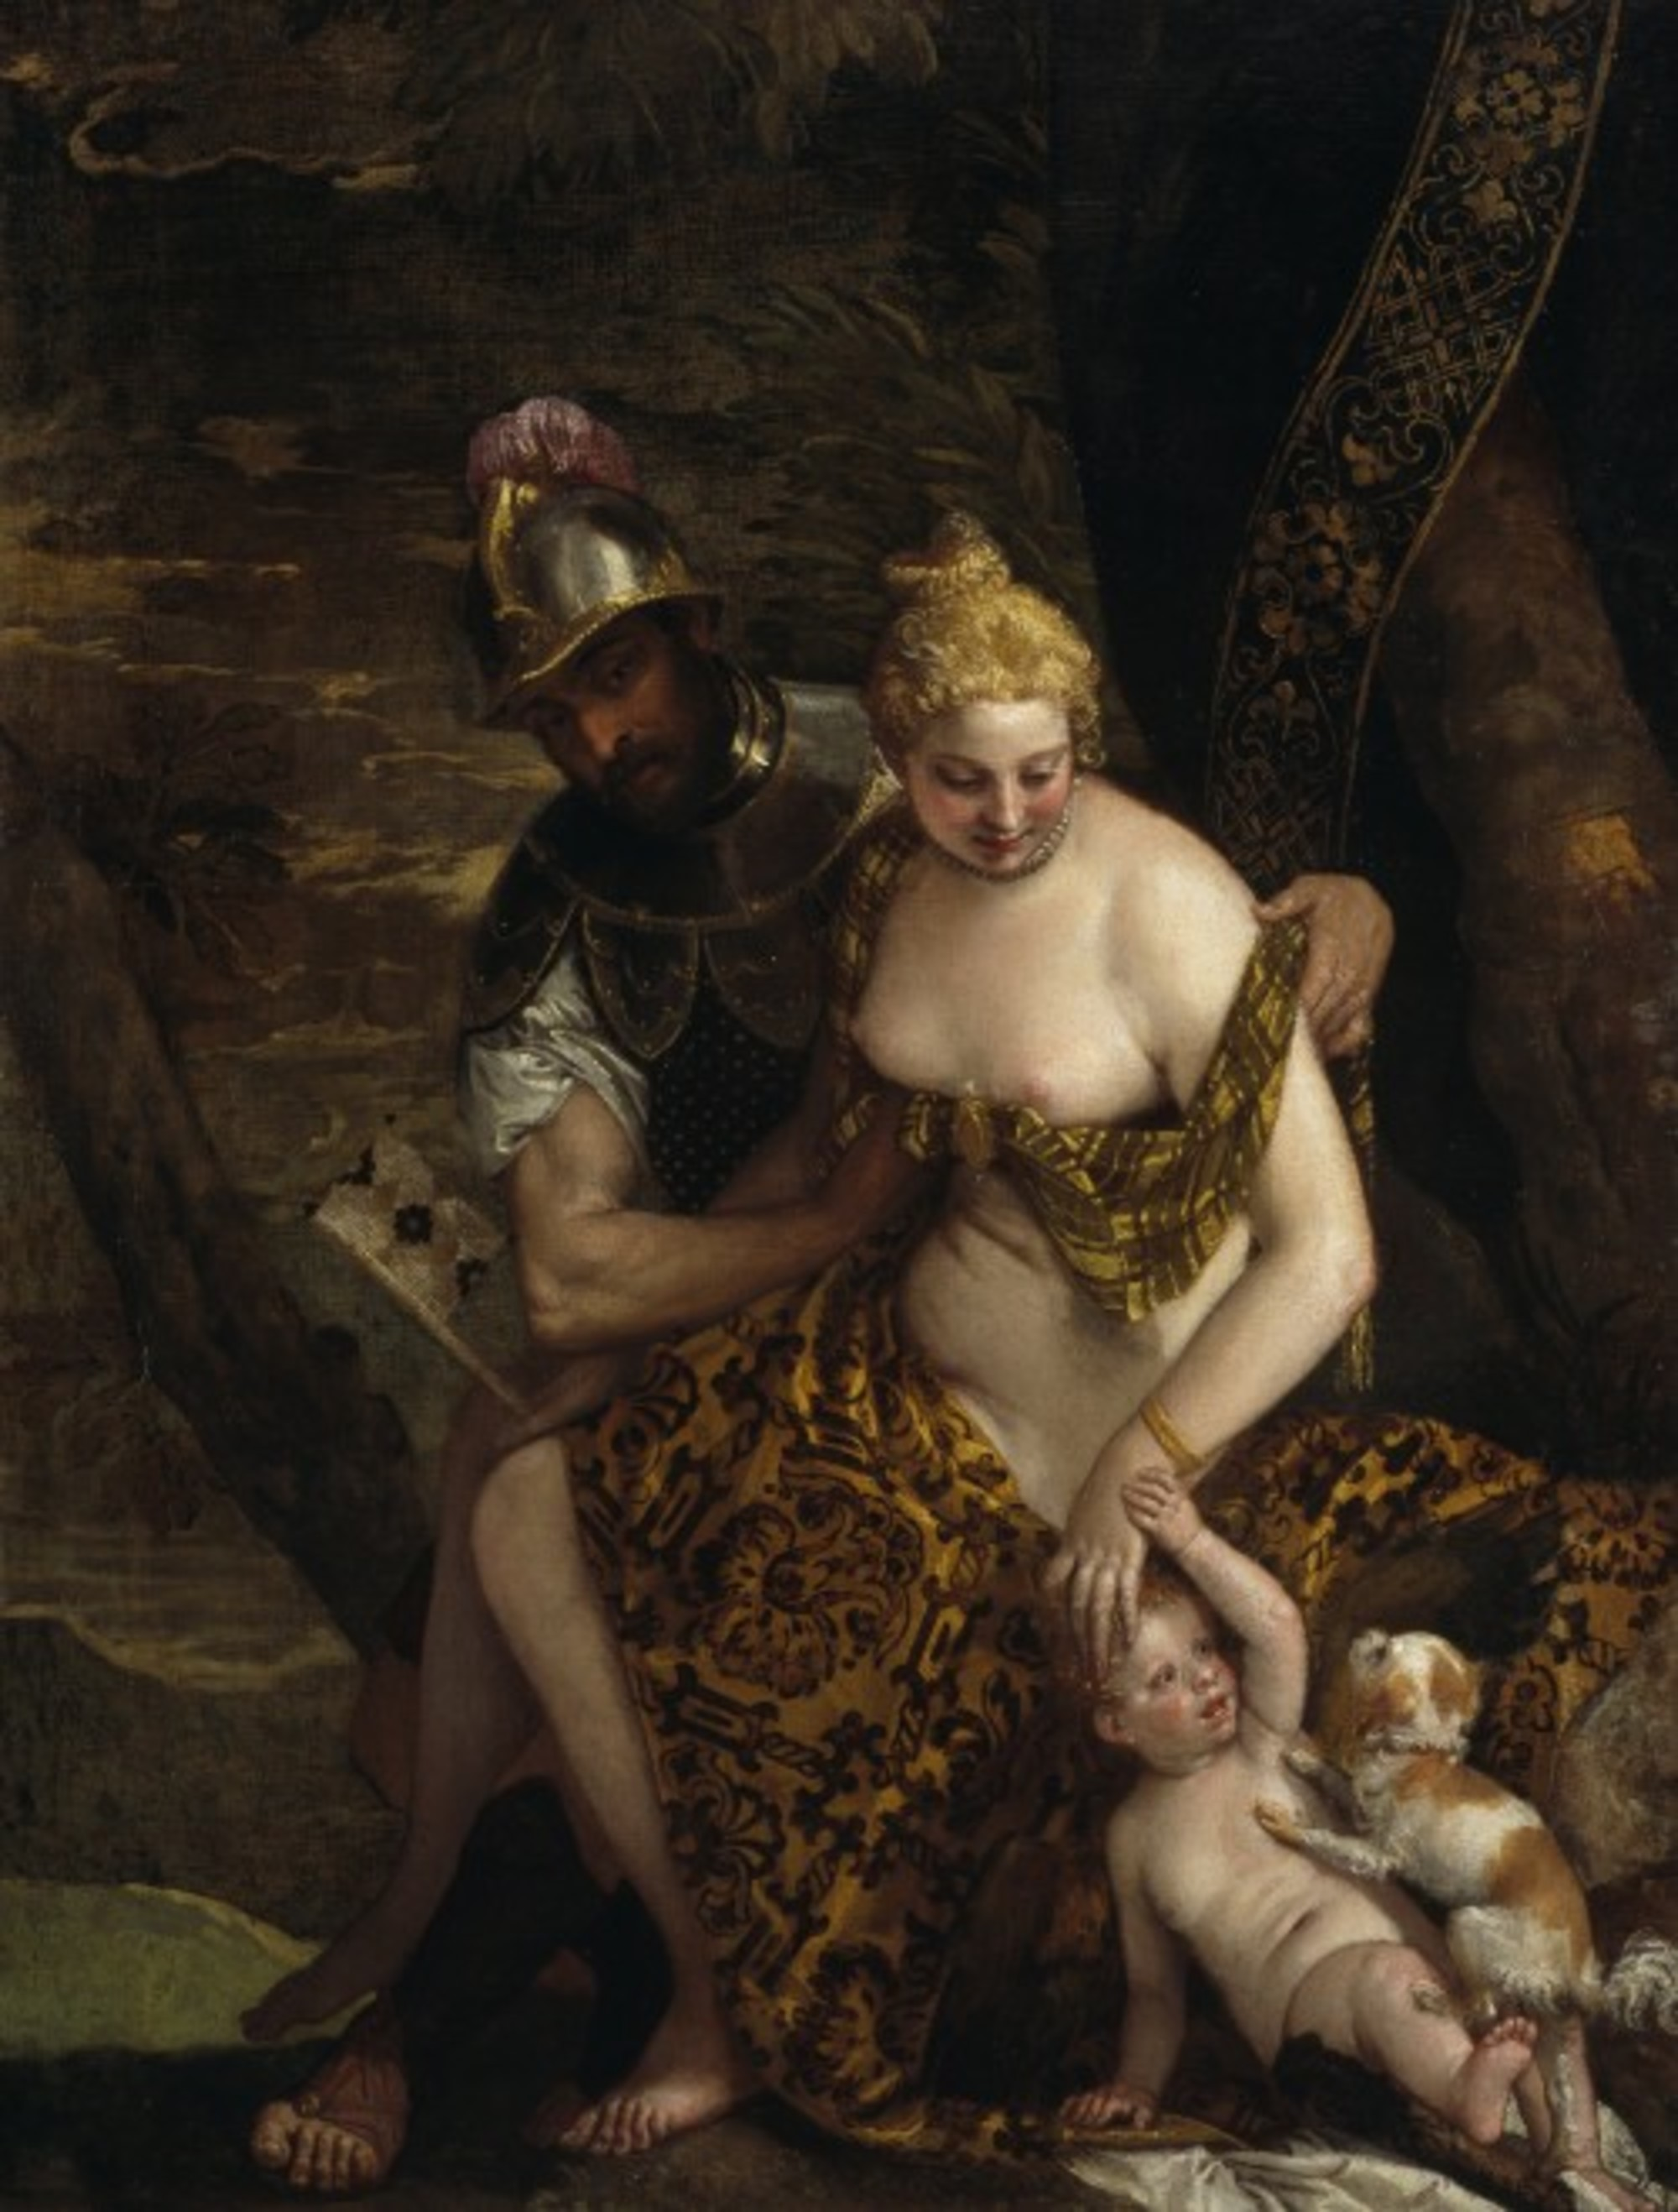 Paolo-Veronese-Caliari---Mars-Venus-and-Cupid---Google-Art-Project.jpg